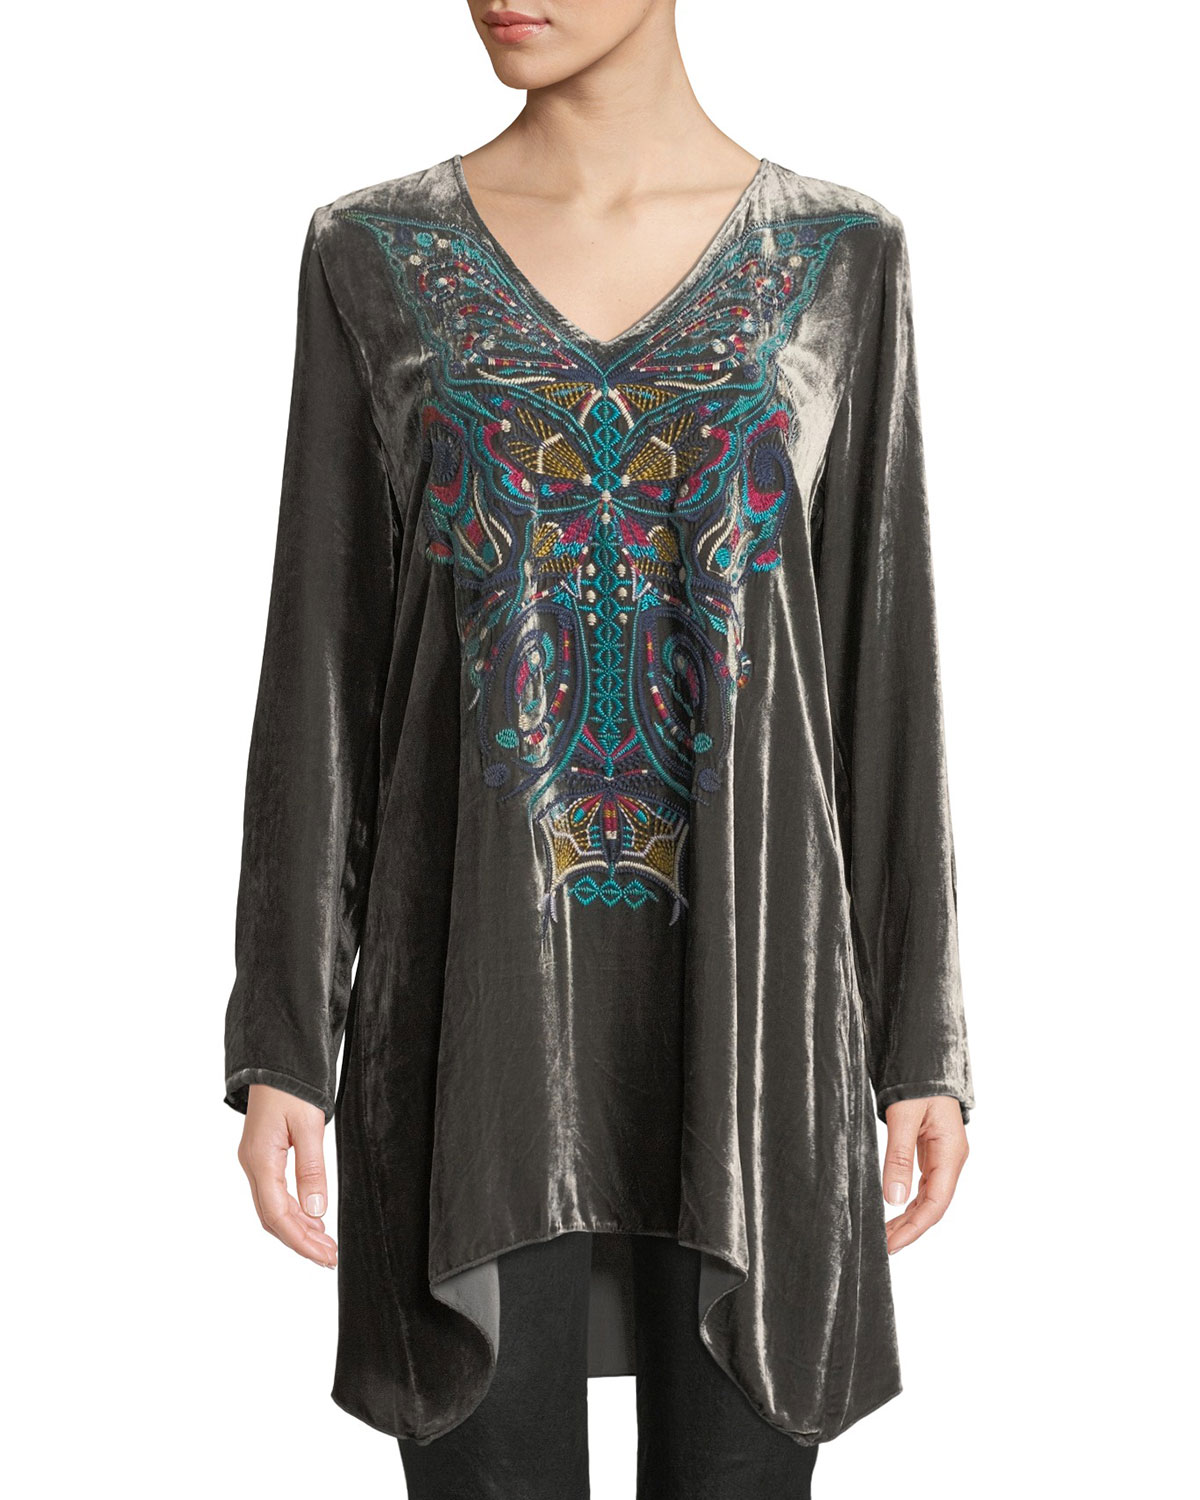 Aurelia Velvet Embroidered Tunic, Petite